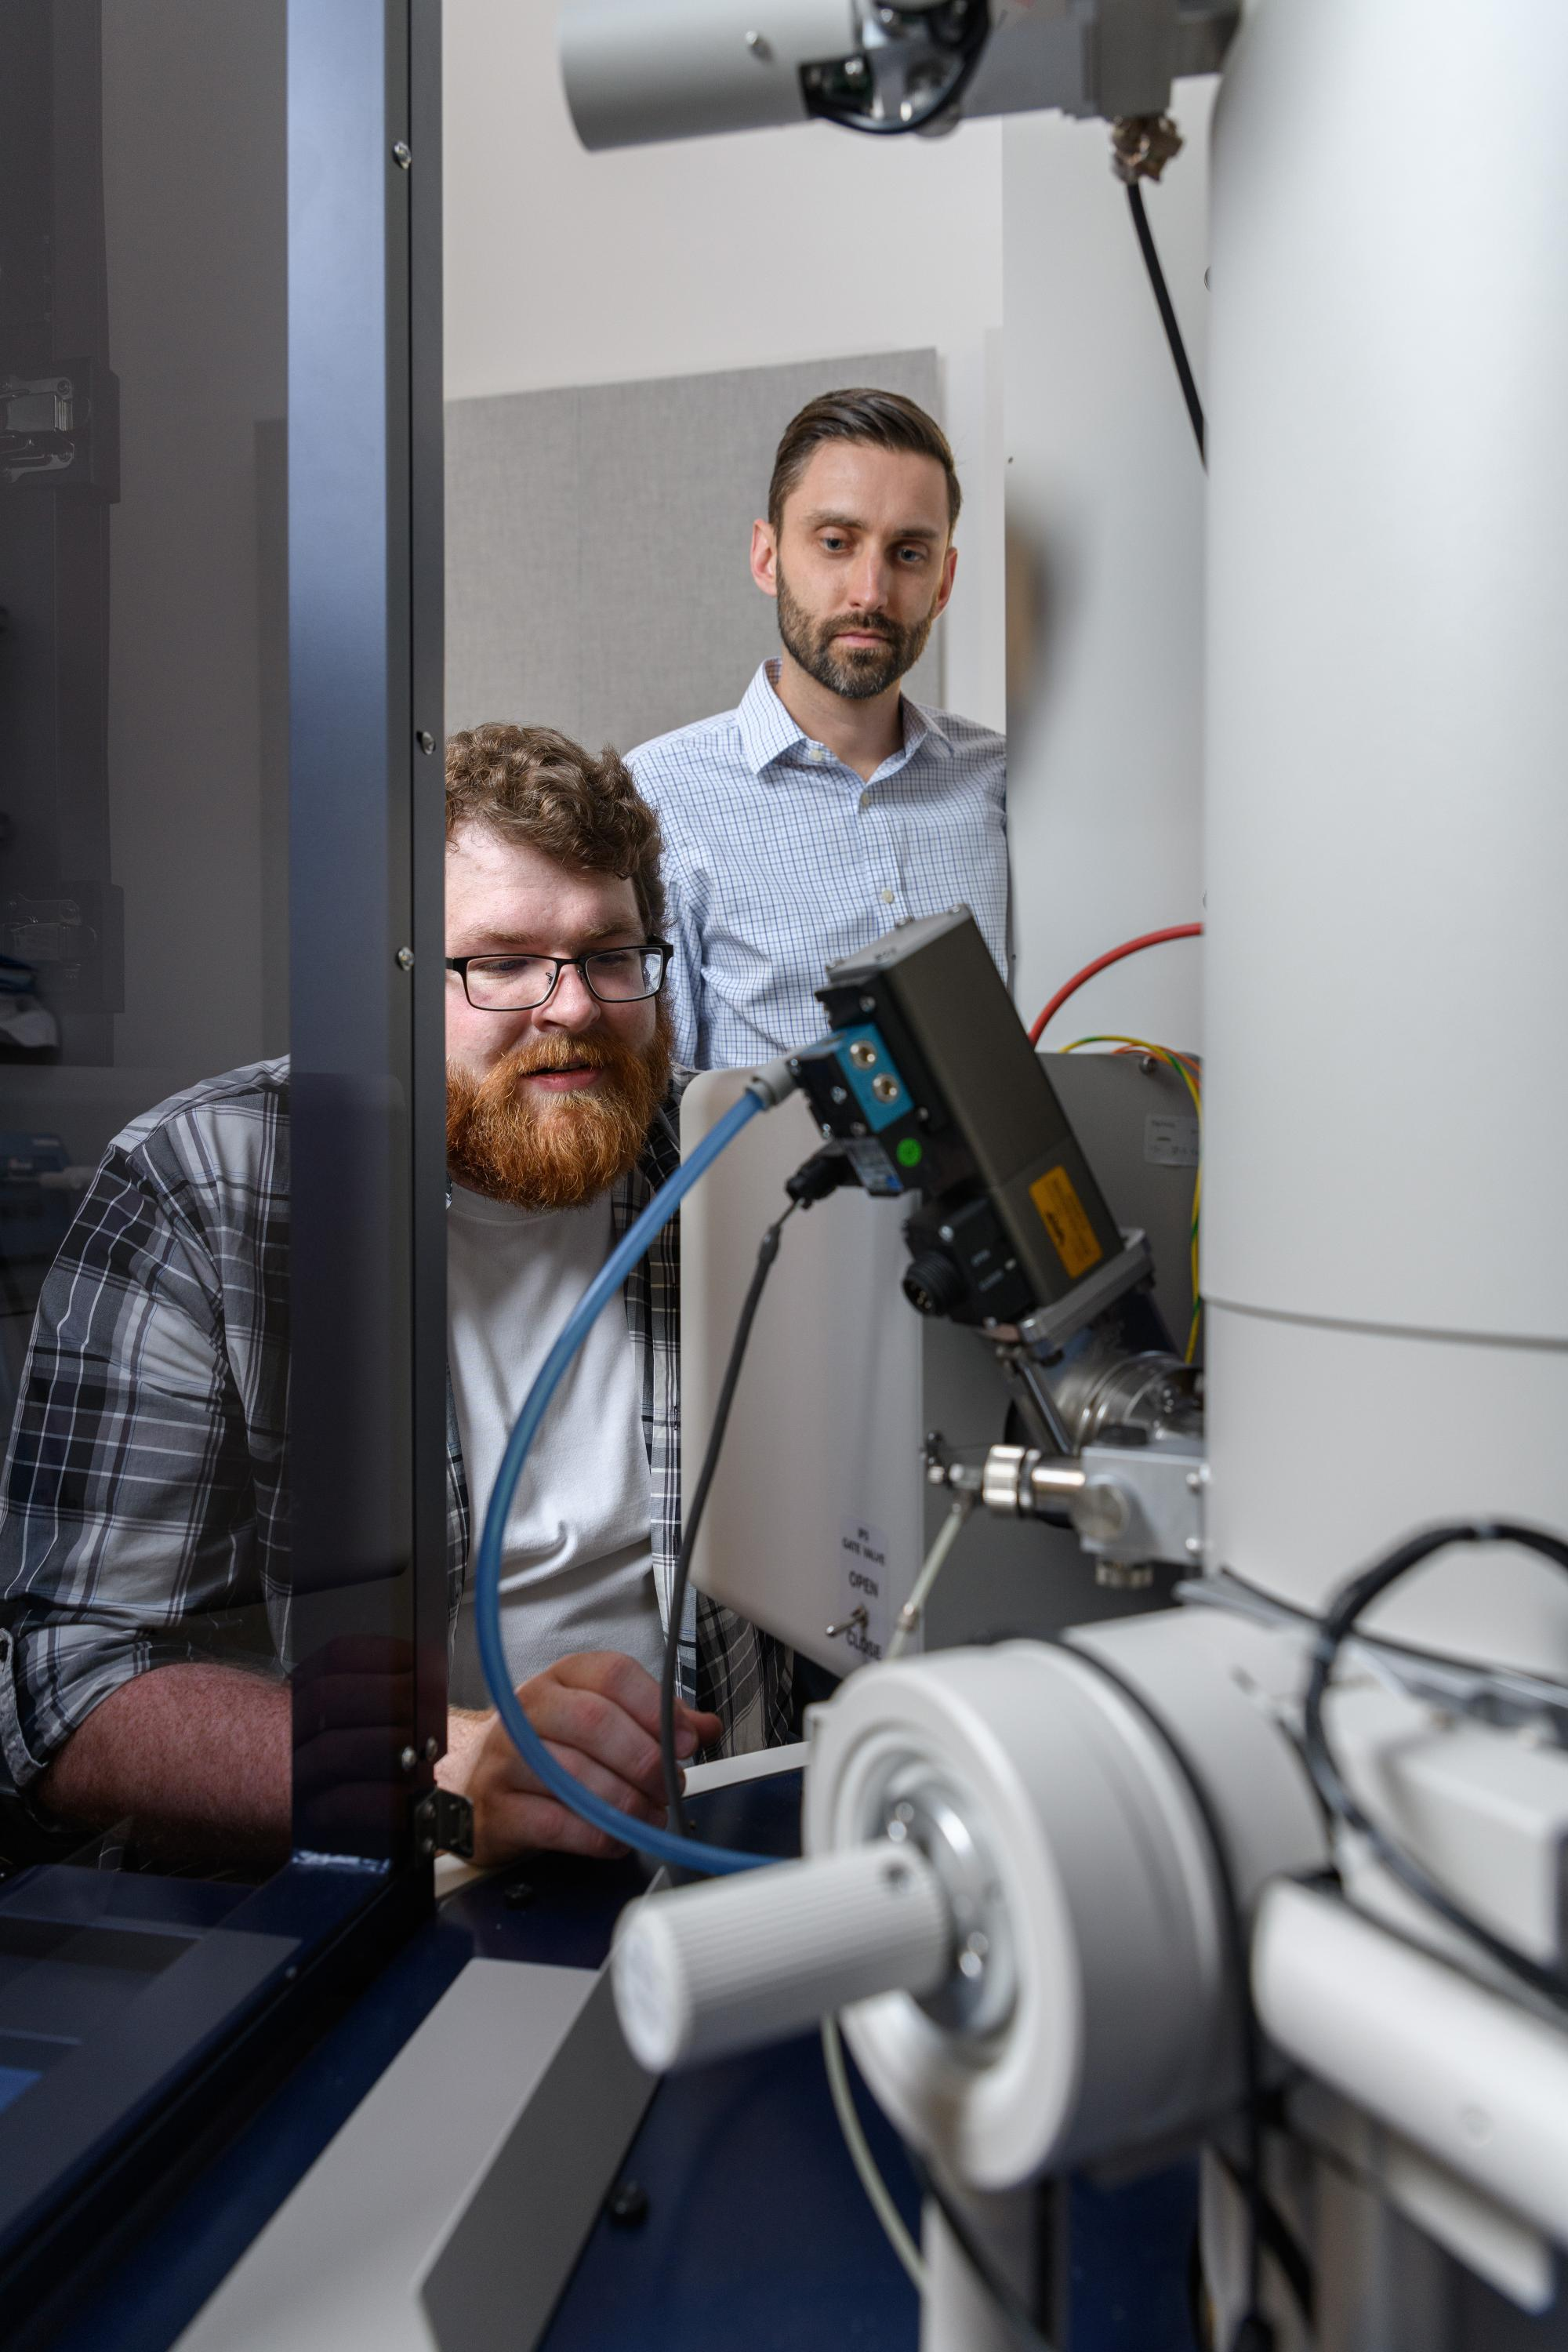 Matthew Boebinger, a graduate student at Georgia Tech, and Matthew McDowell, an assistant professor in the George W. Woodruff School of Mechanical Engineering and the School of Materials Science and Engineering, used an electron microscope to observe chem